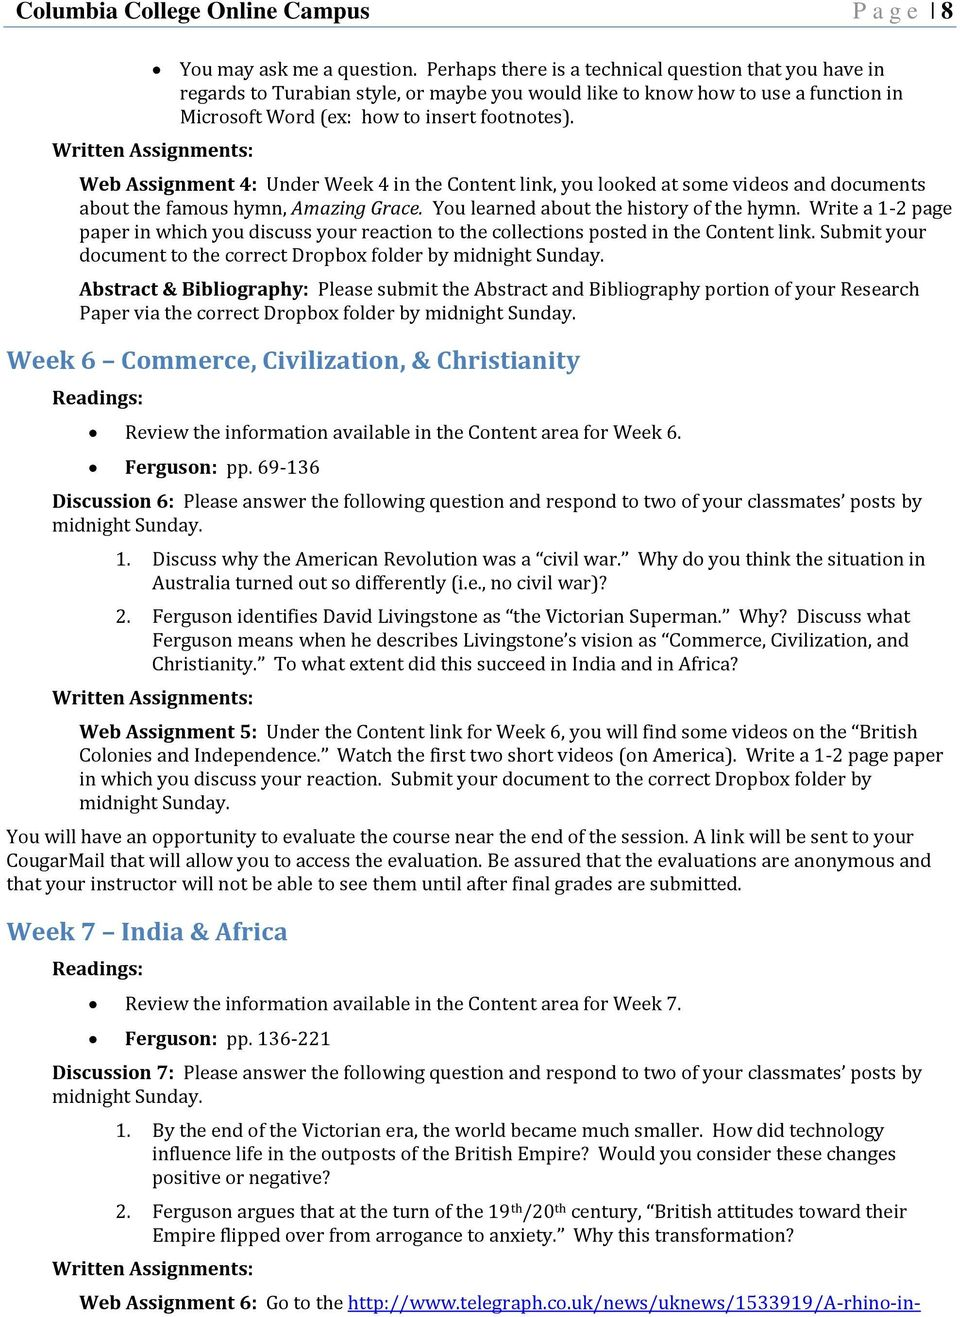 Web Assignment 4: Under Week 4 in the Content link, you looked at some videos and documents about the famous hymn, Amazing Grace. You learned about the history of the hymn.